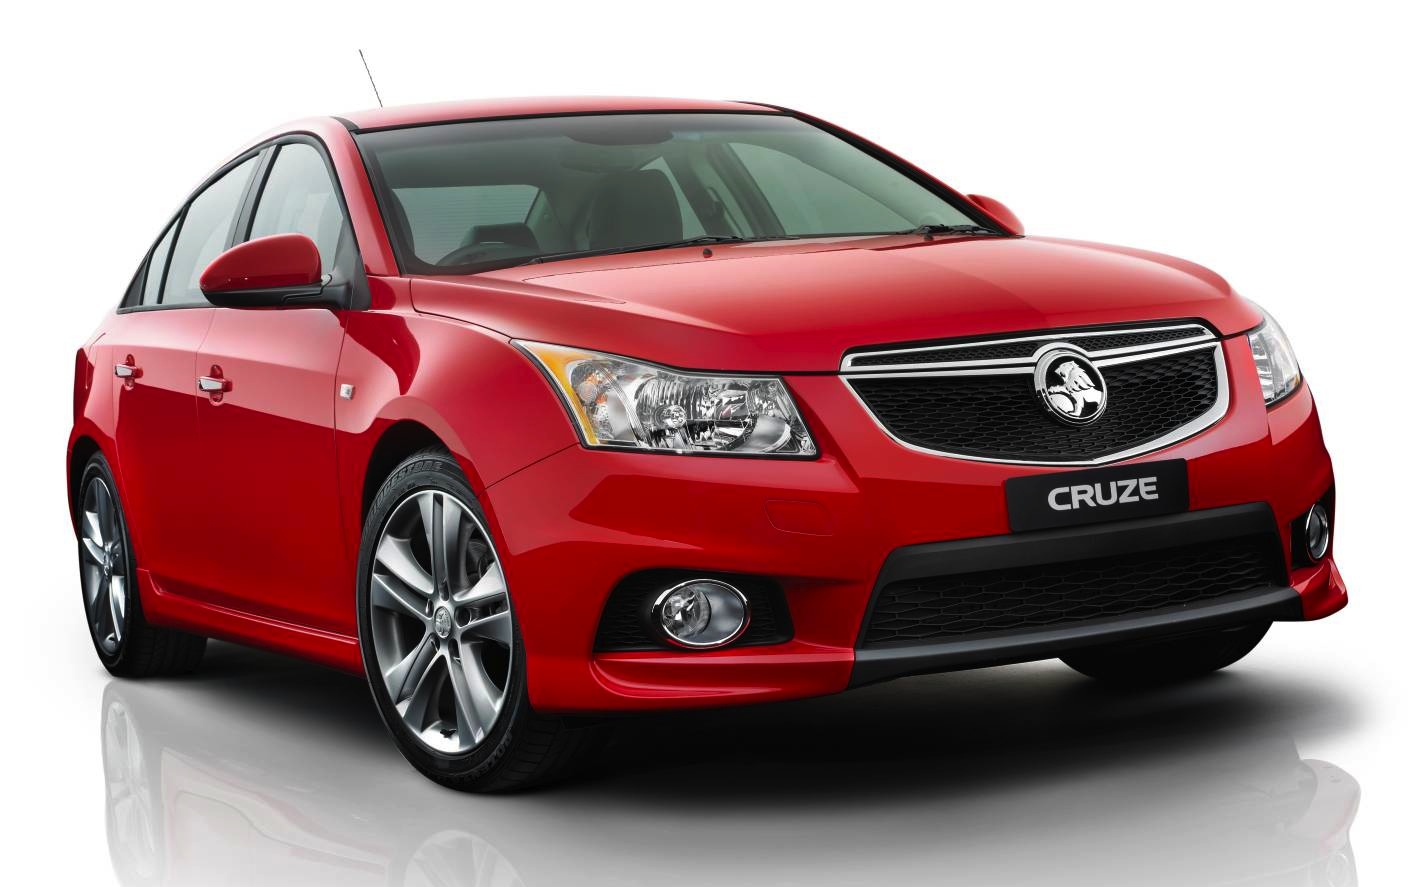 holden cruze sedan hatch upgraded with new interior tech photos 1 of 2. Black Bedroom Furniture Sets. Home Design Ideas